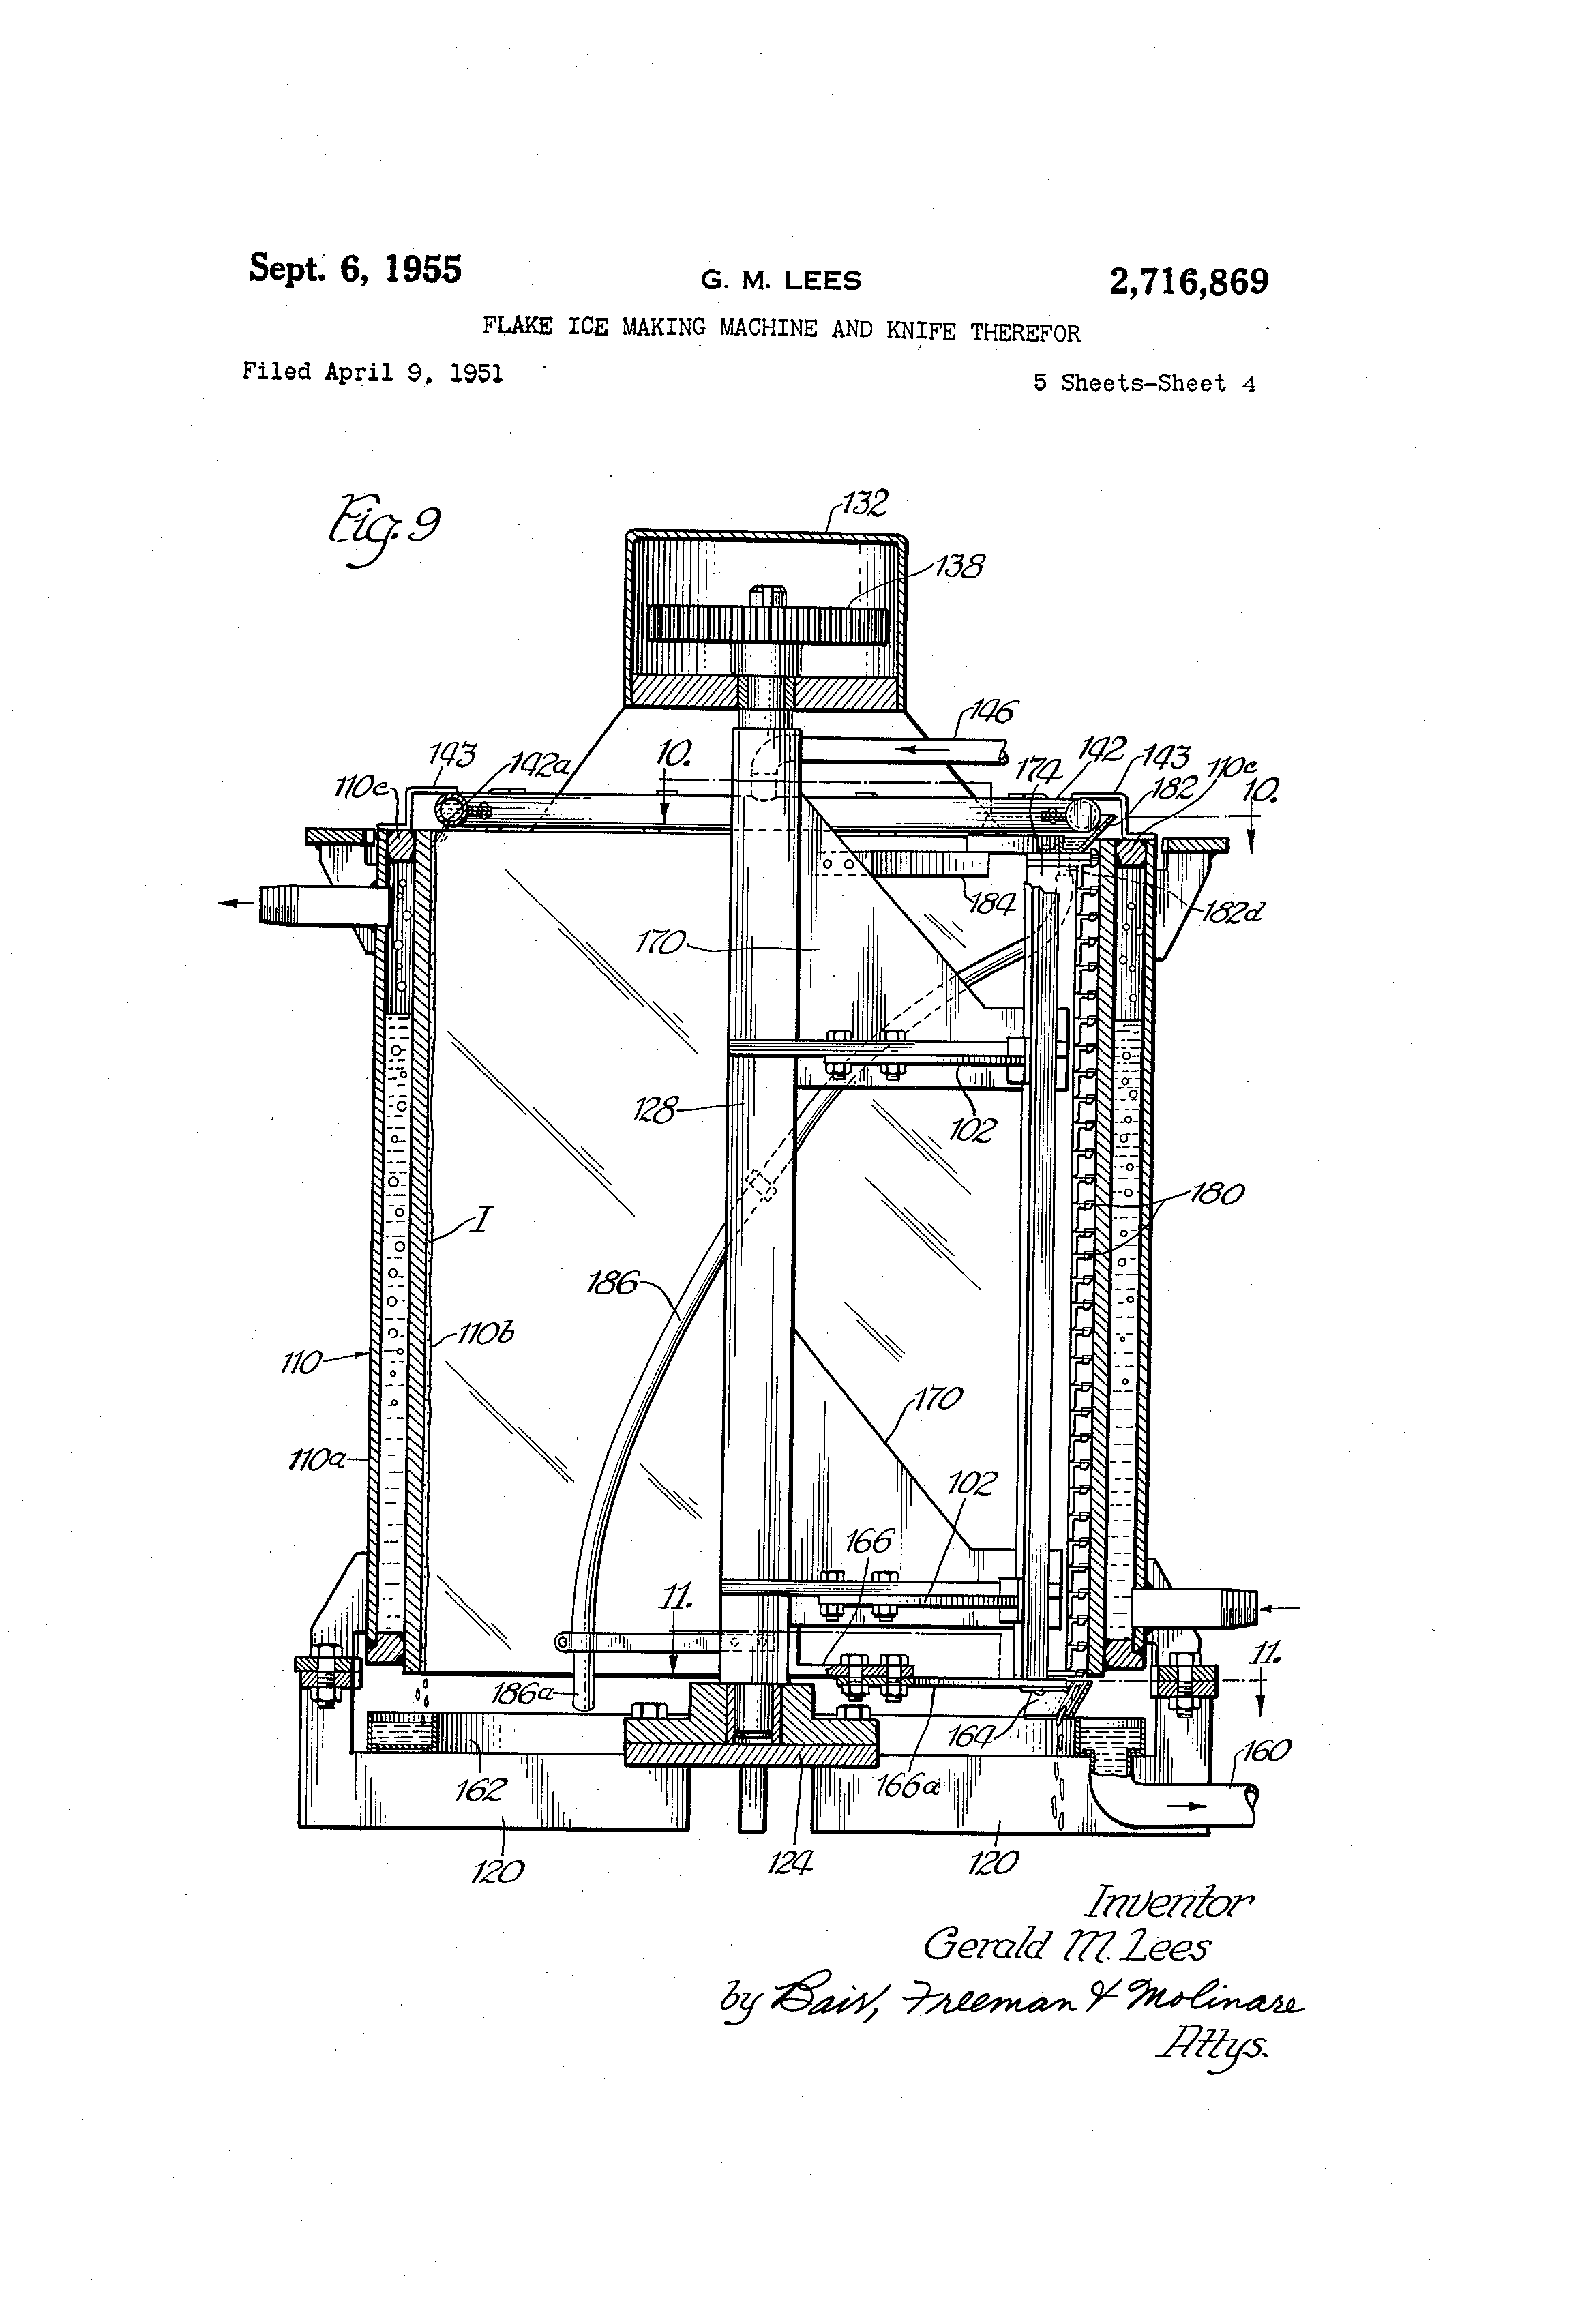 Schaltplang Flake Ice Machine Auto Electrical Wiring Diagram Ducati 999 Patent Us2716869